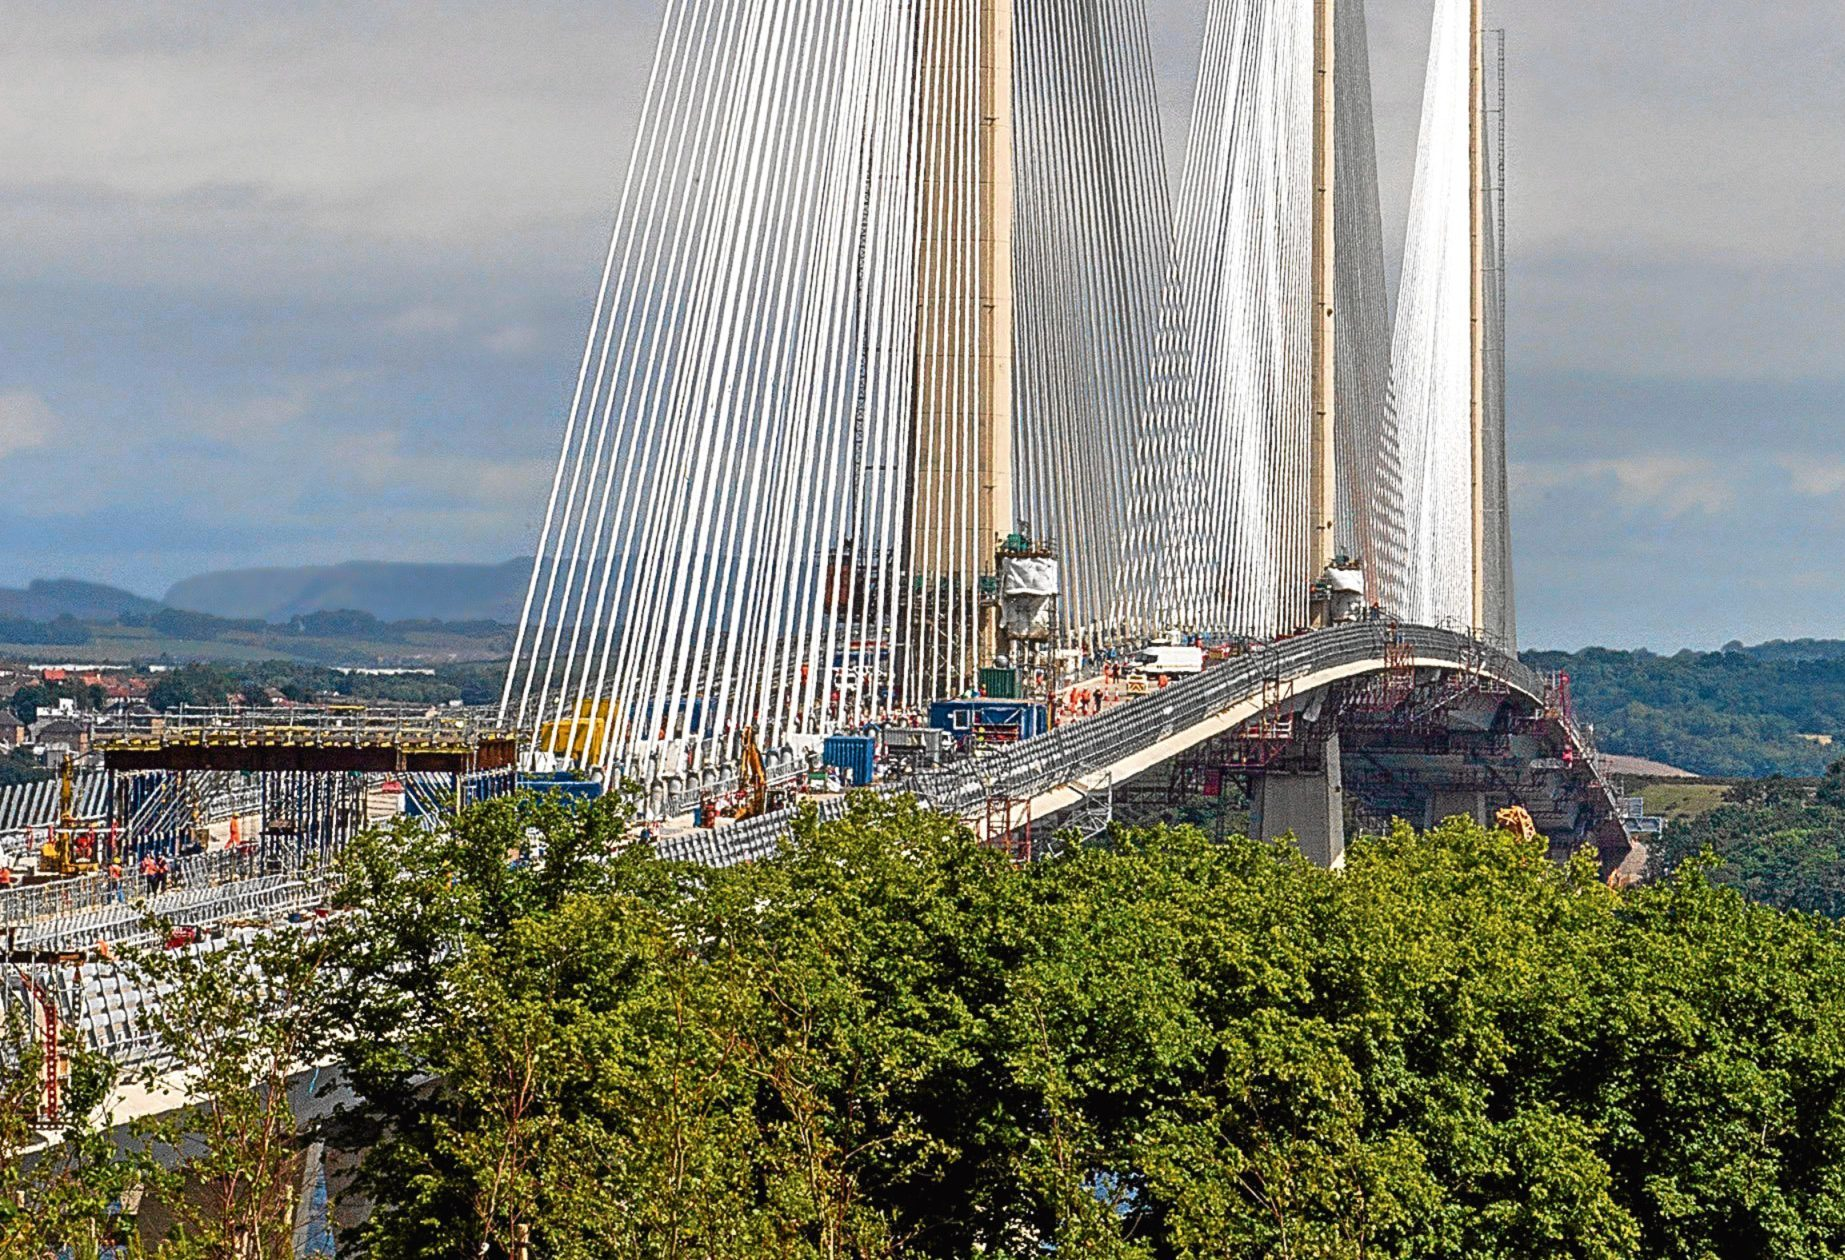 Queensferry Crossing in the Firth of Forth